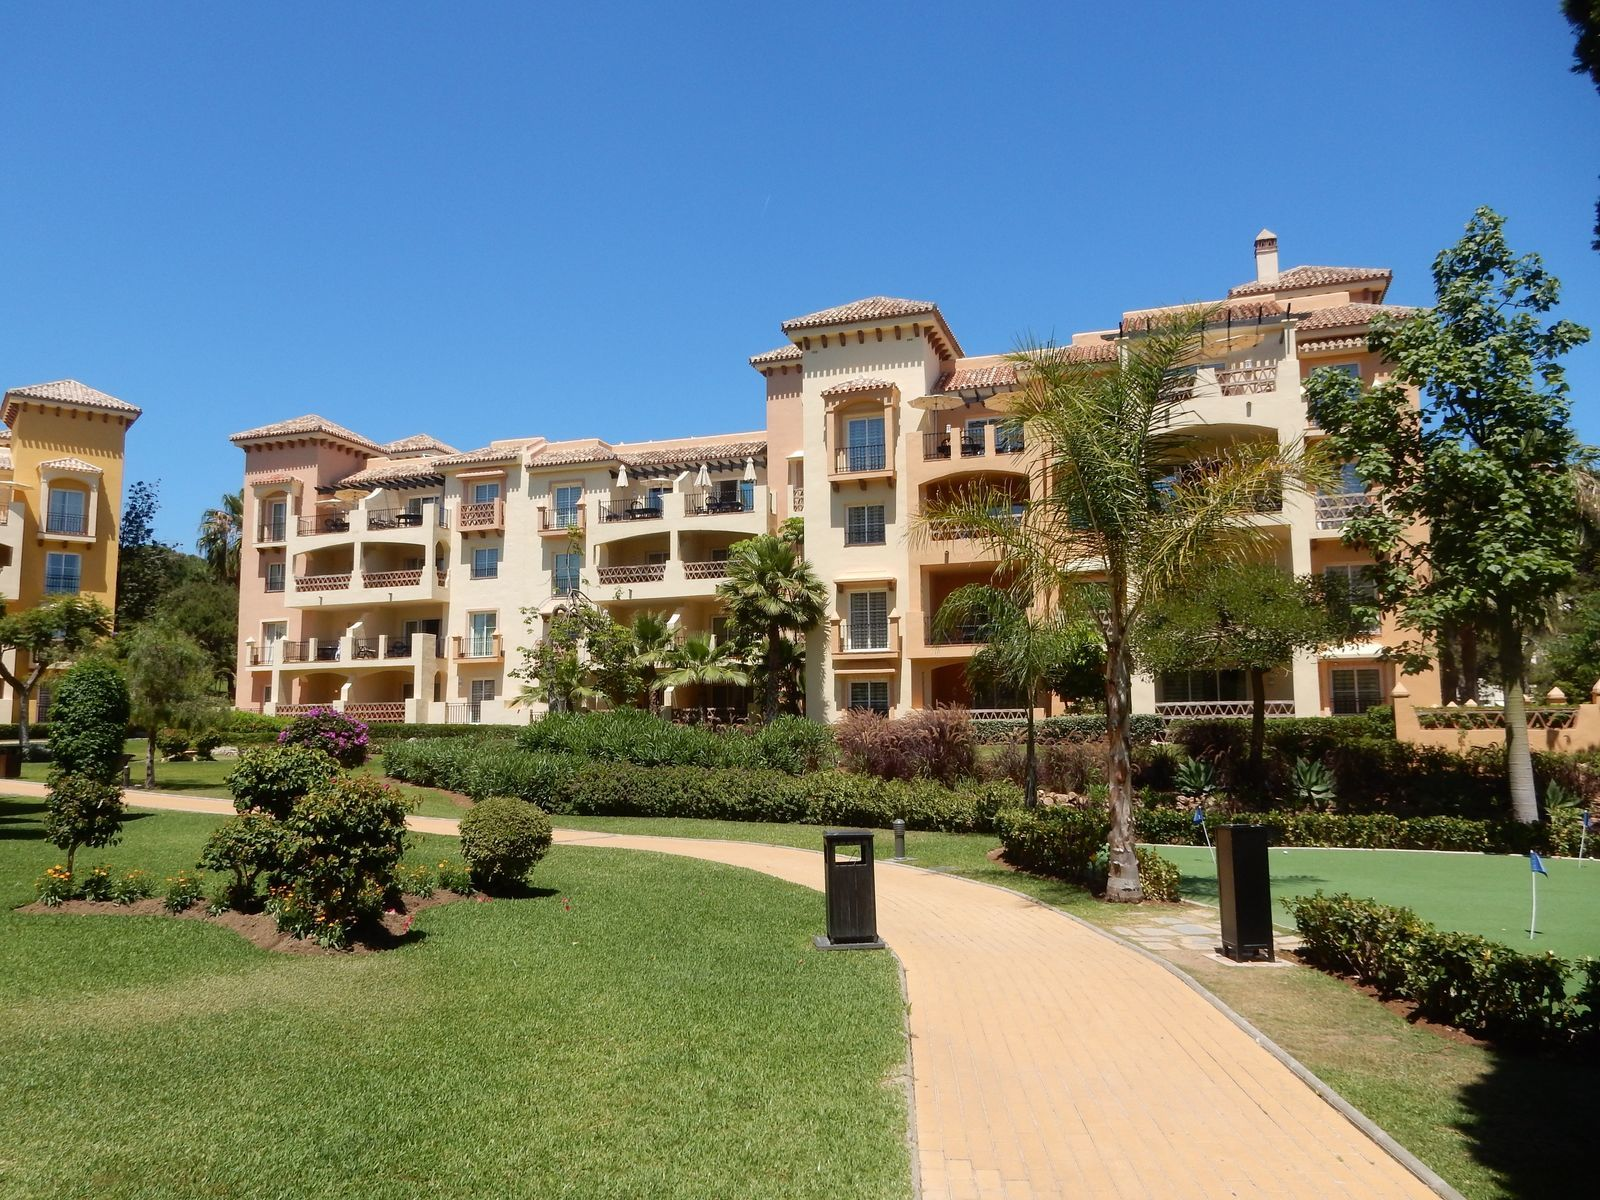 Marriott's Marbella Beach Resort, 2-Bedroom